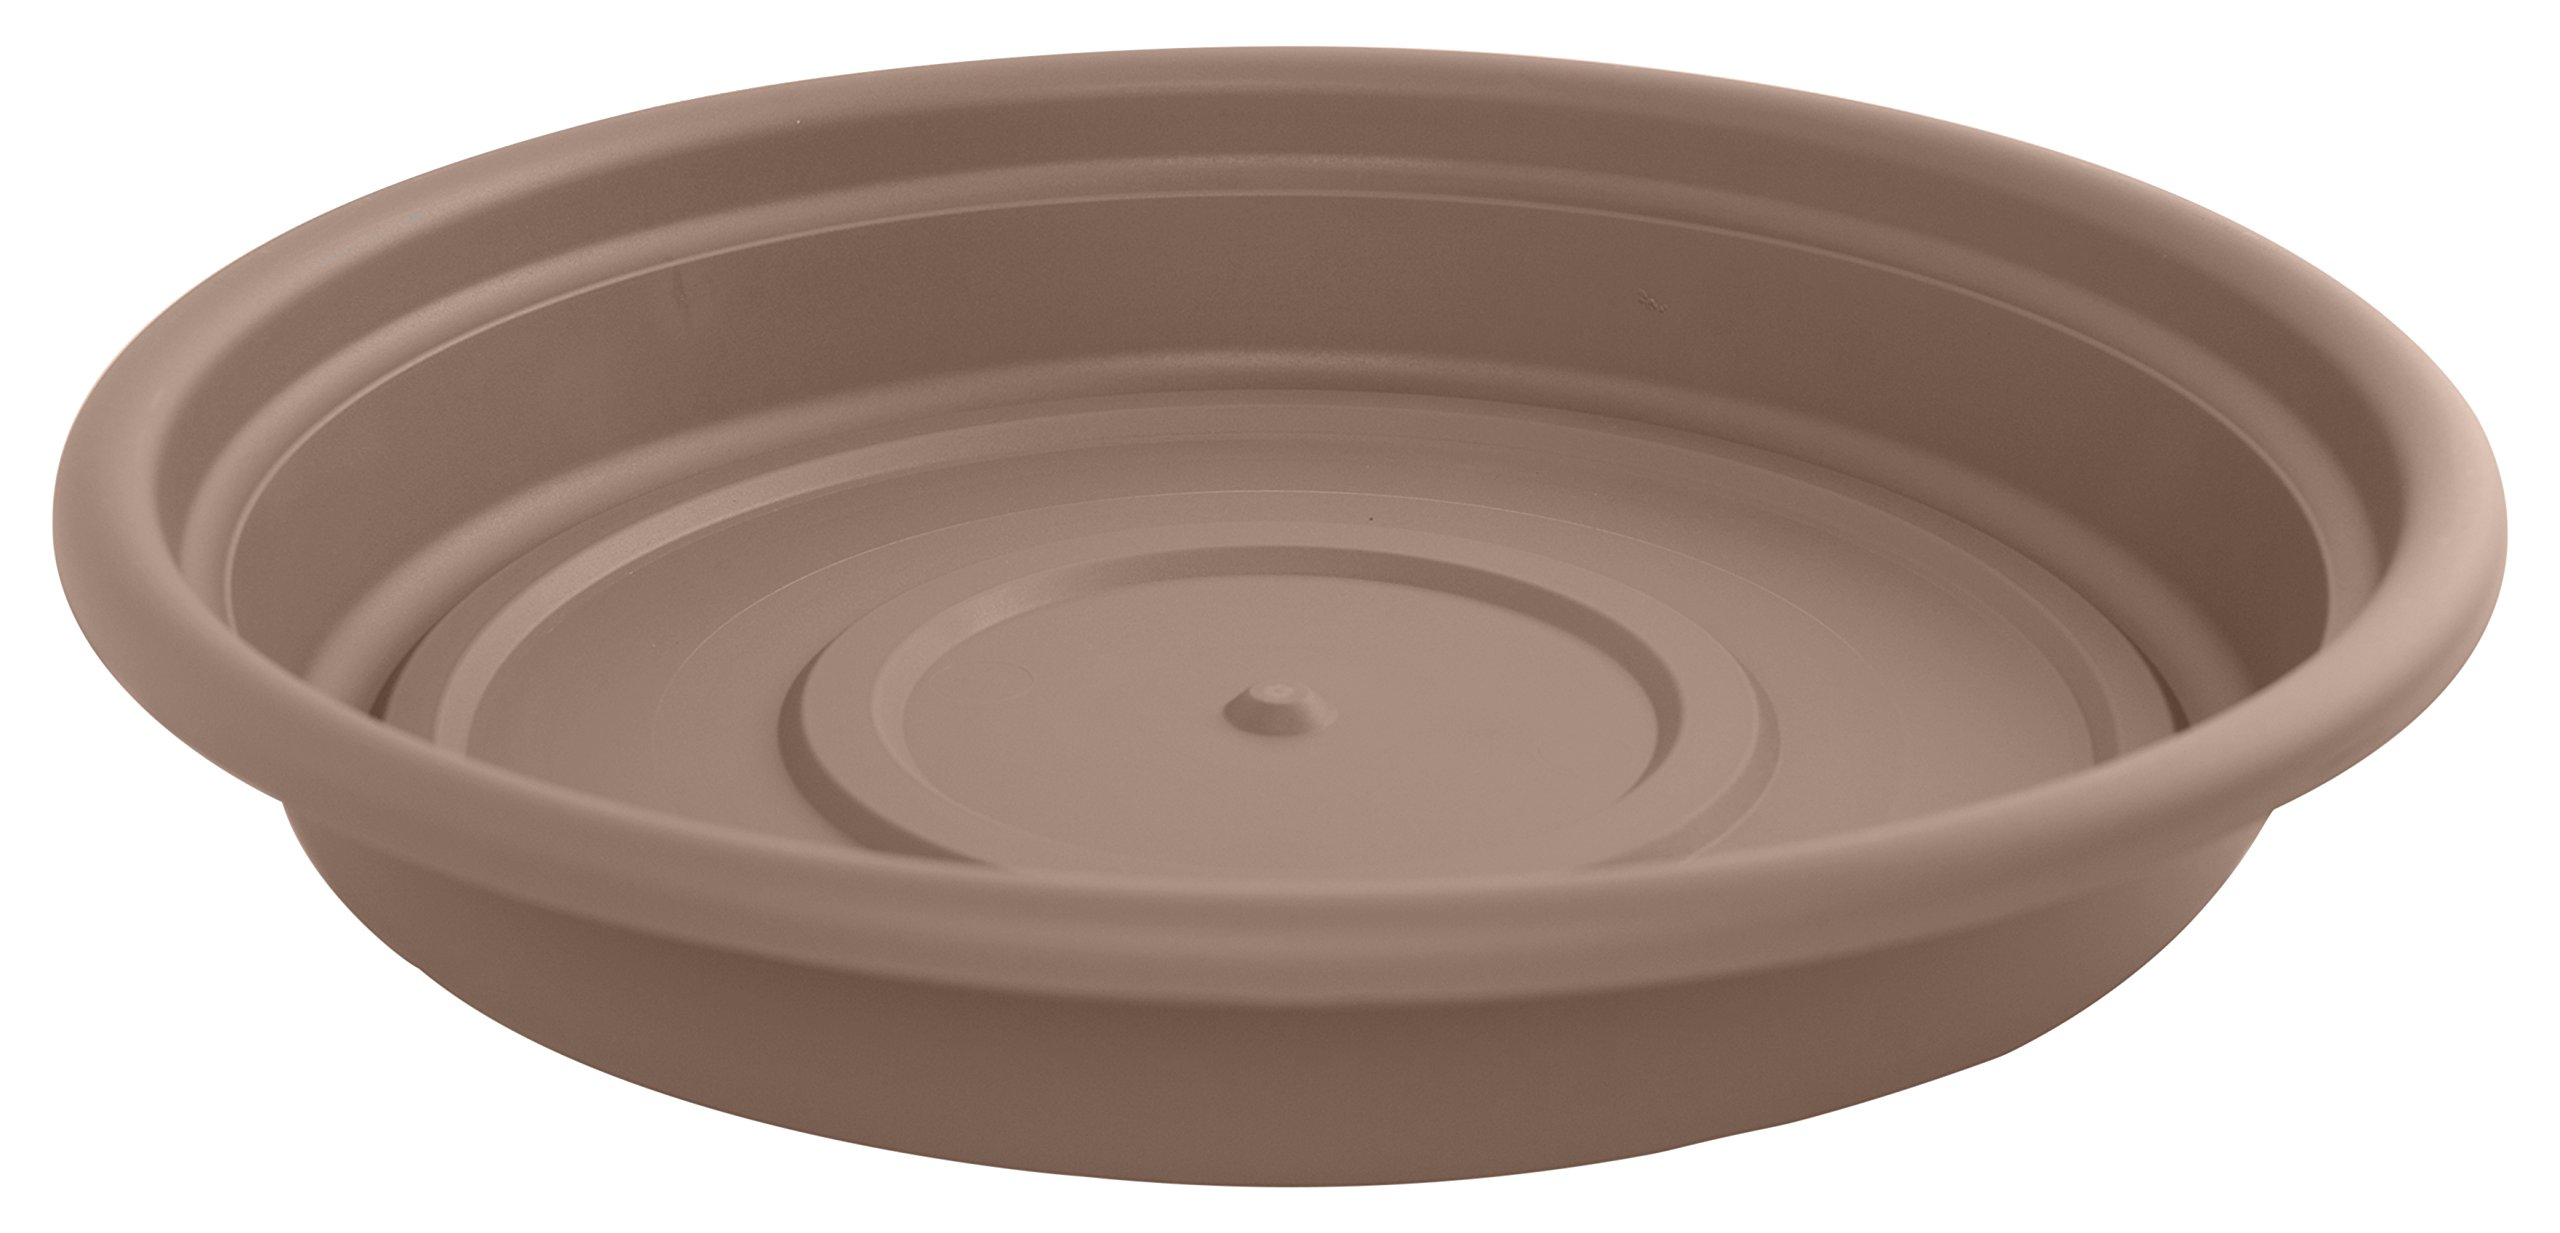 Bloem Dura Cotta Plant Saucer Tray, 20'', Chocolate (SDC20-45) by Bloem